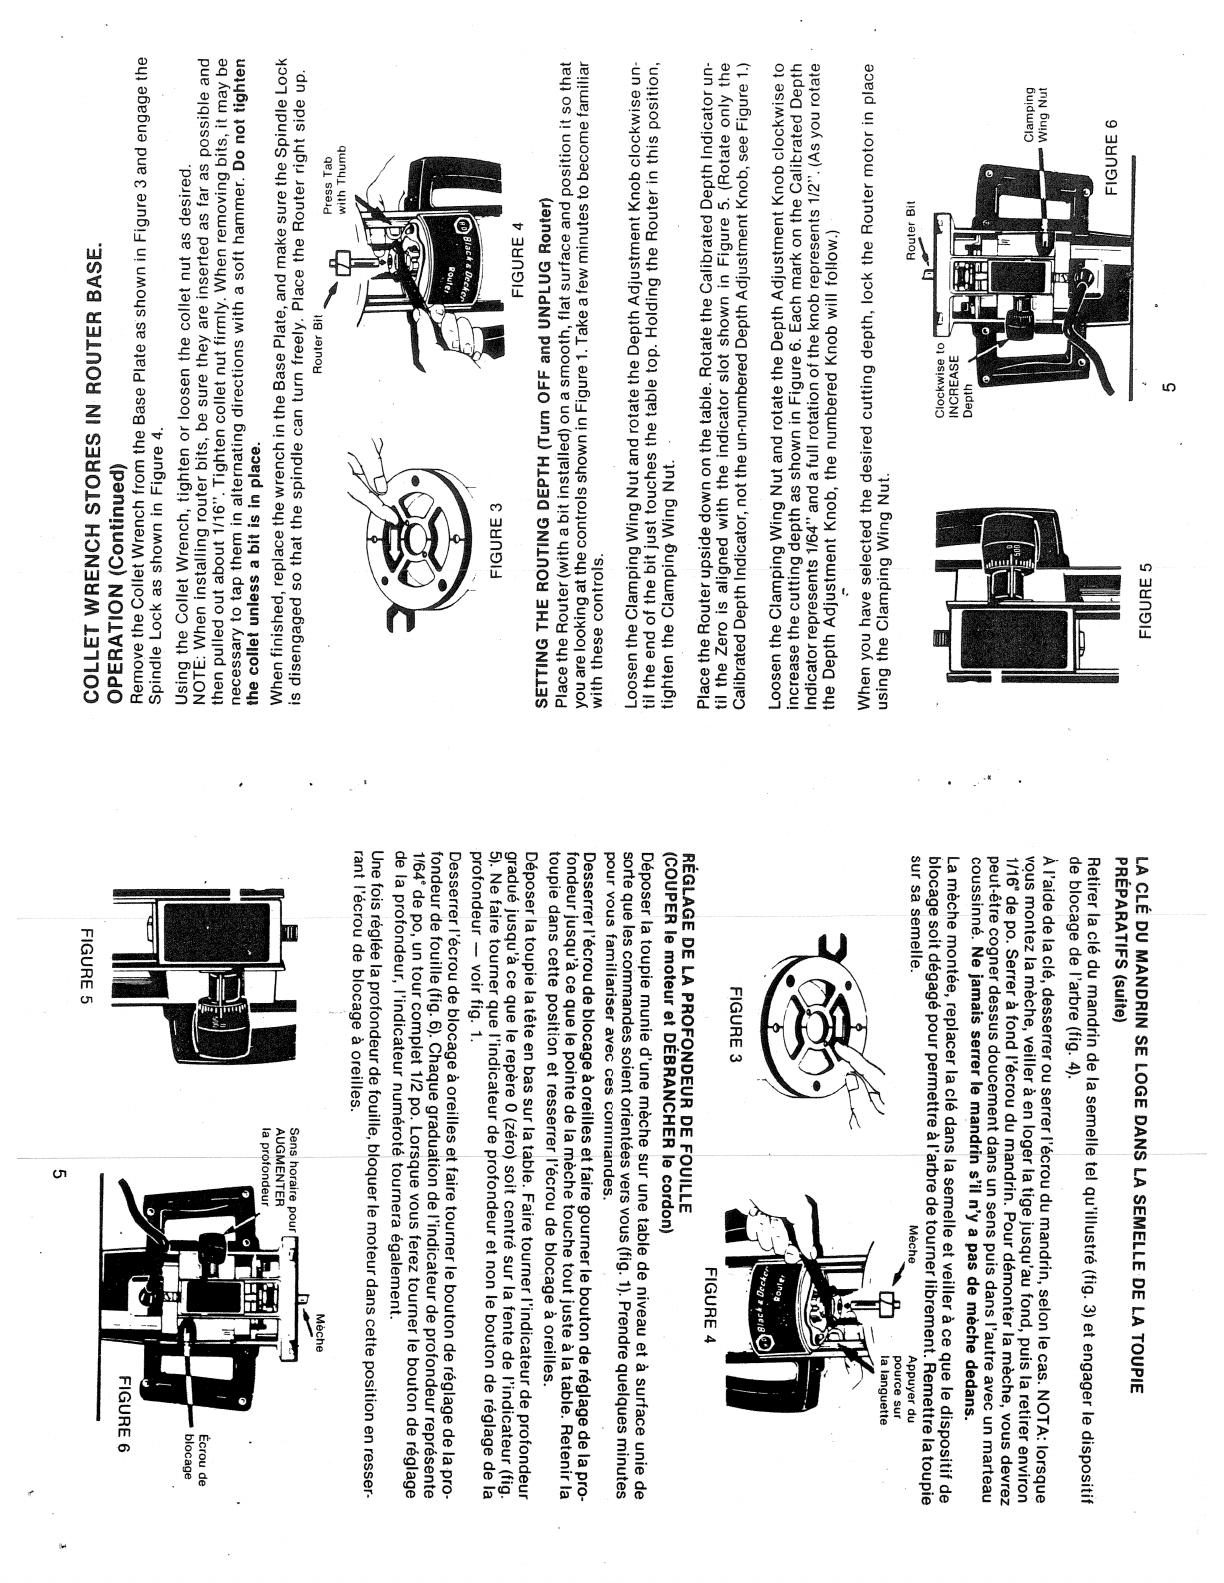 Page 5 of Black & Decker Router 7613-04 User Guide